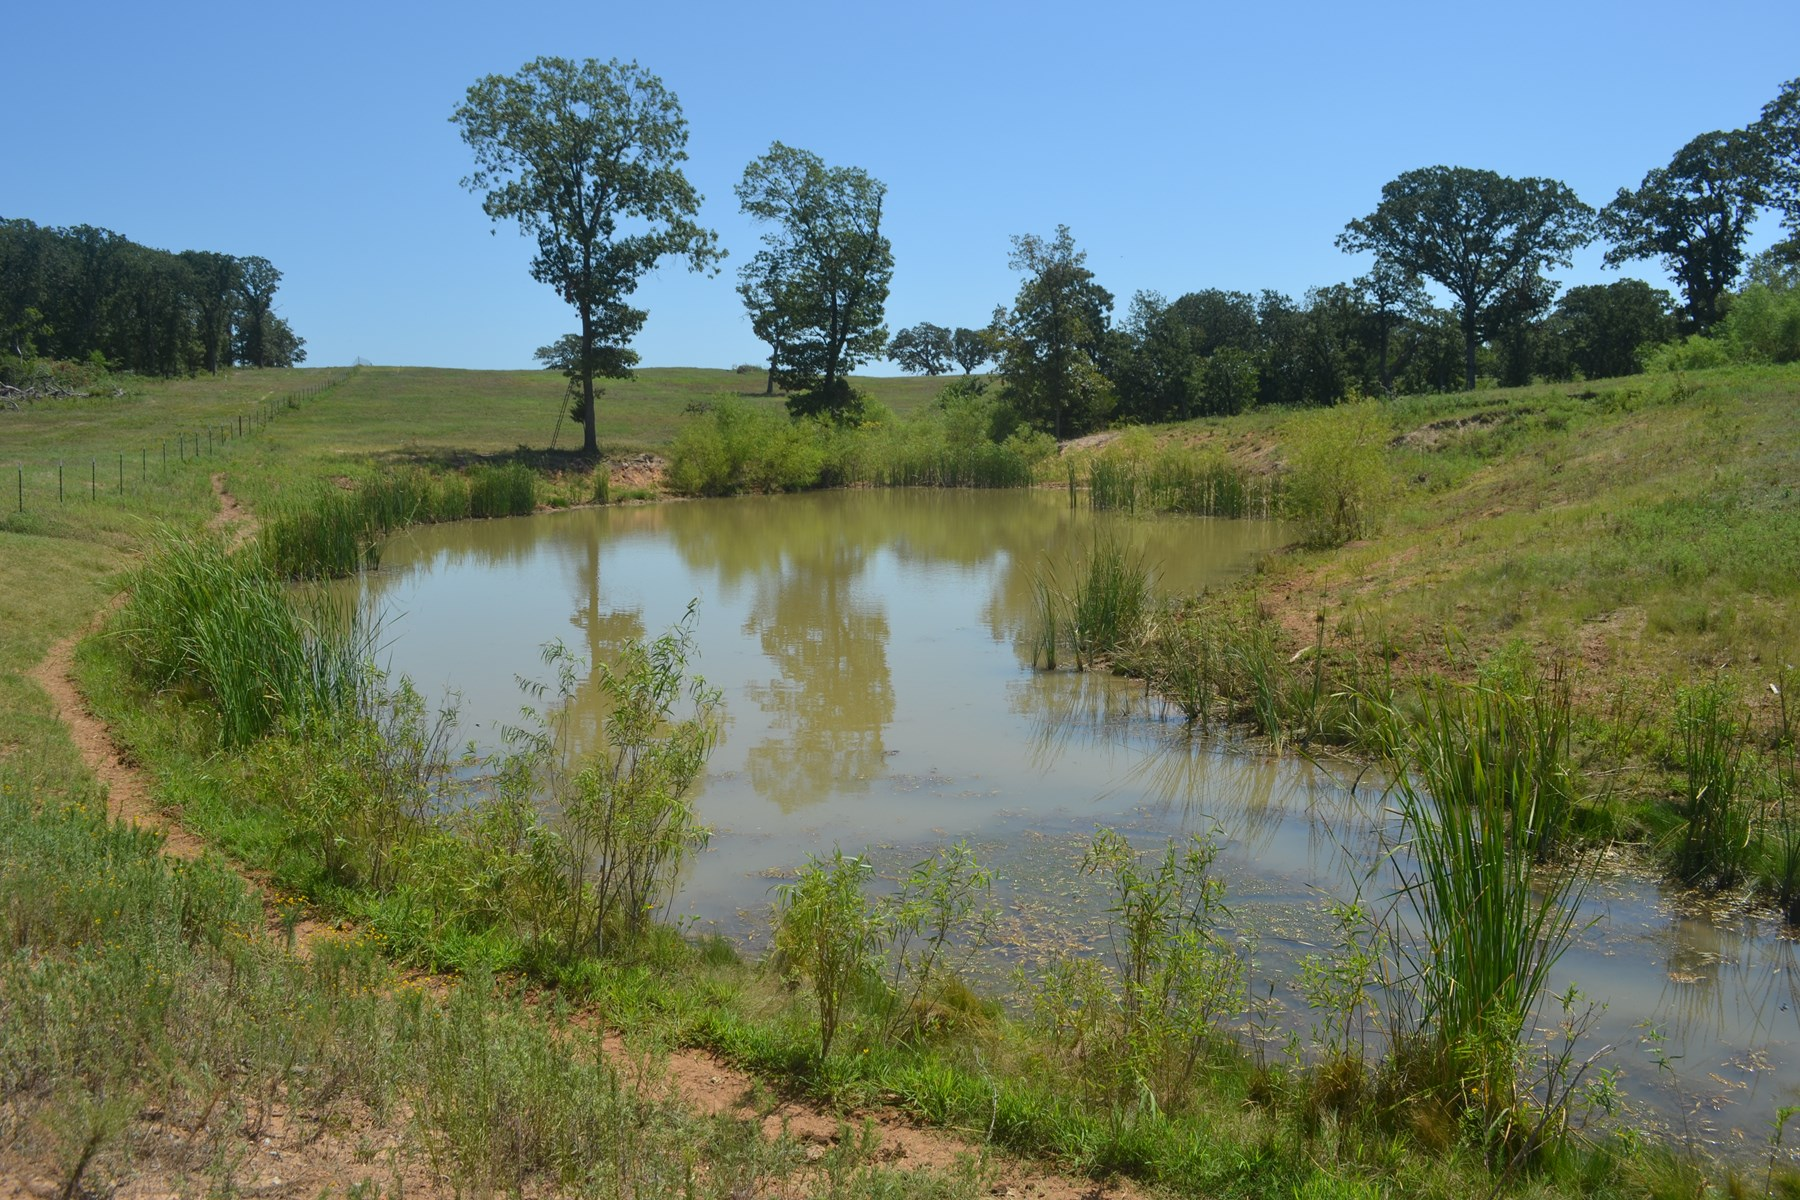 STRATFORD MCCLAIN COUNTY OKLAHOMA LAND FOR SALE PROPERTY